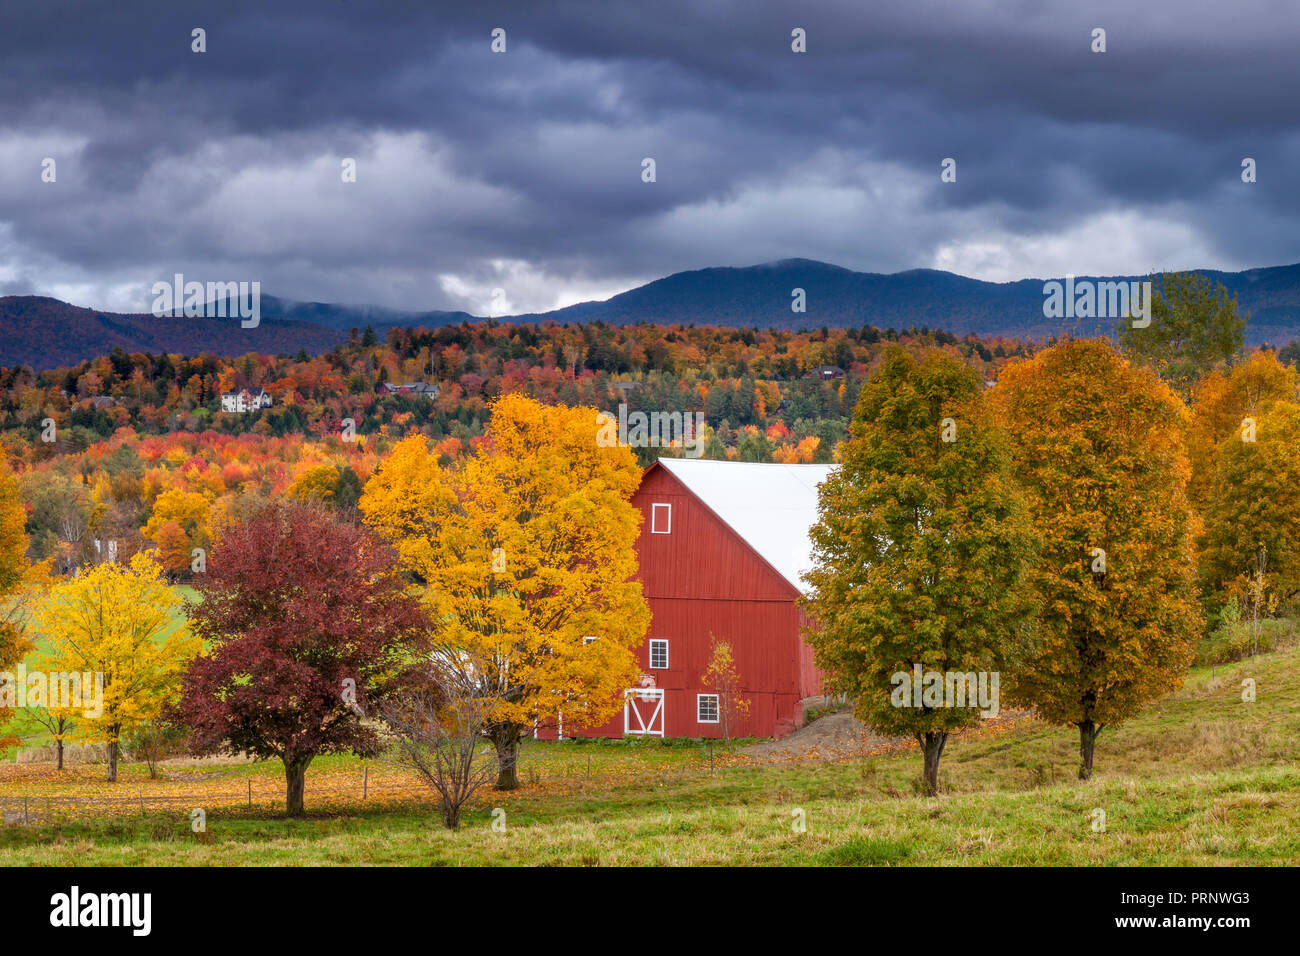 Fall foliage surrounding red barn near Stowe, Vermont, USA - Stock Image